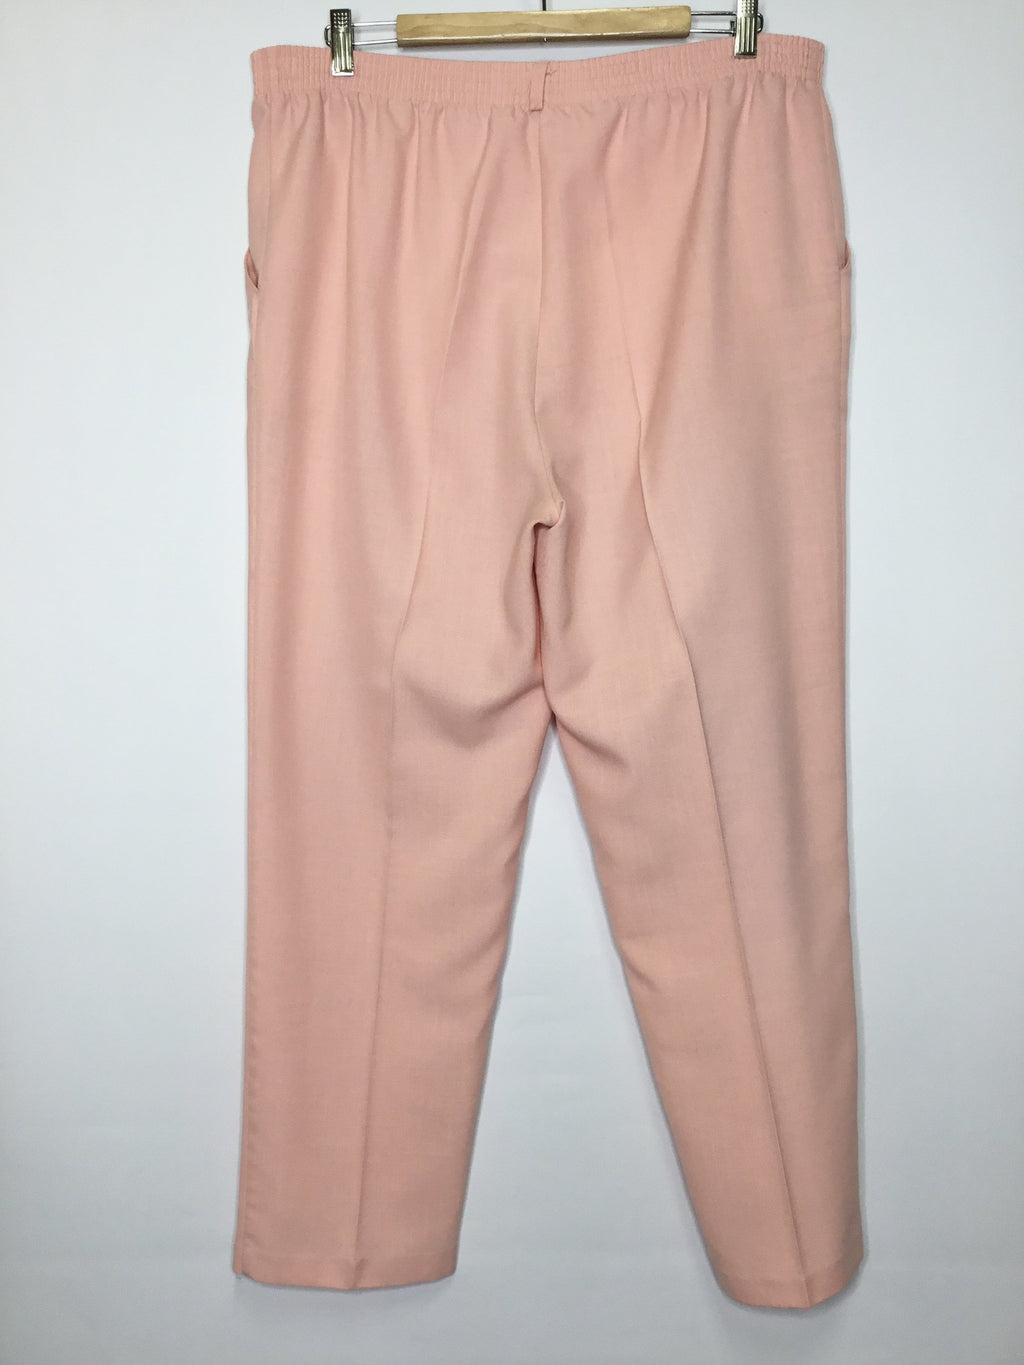 Strawberry Creme Trousers